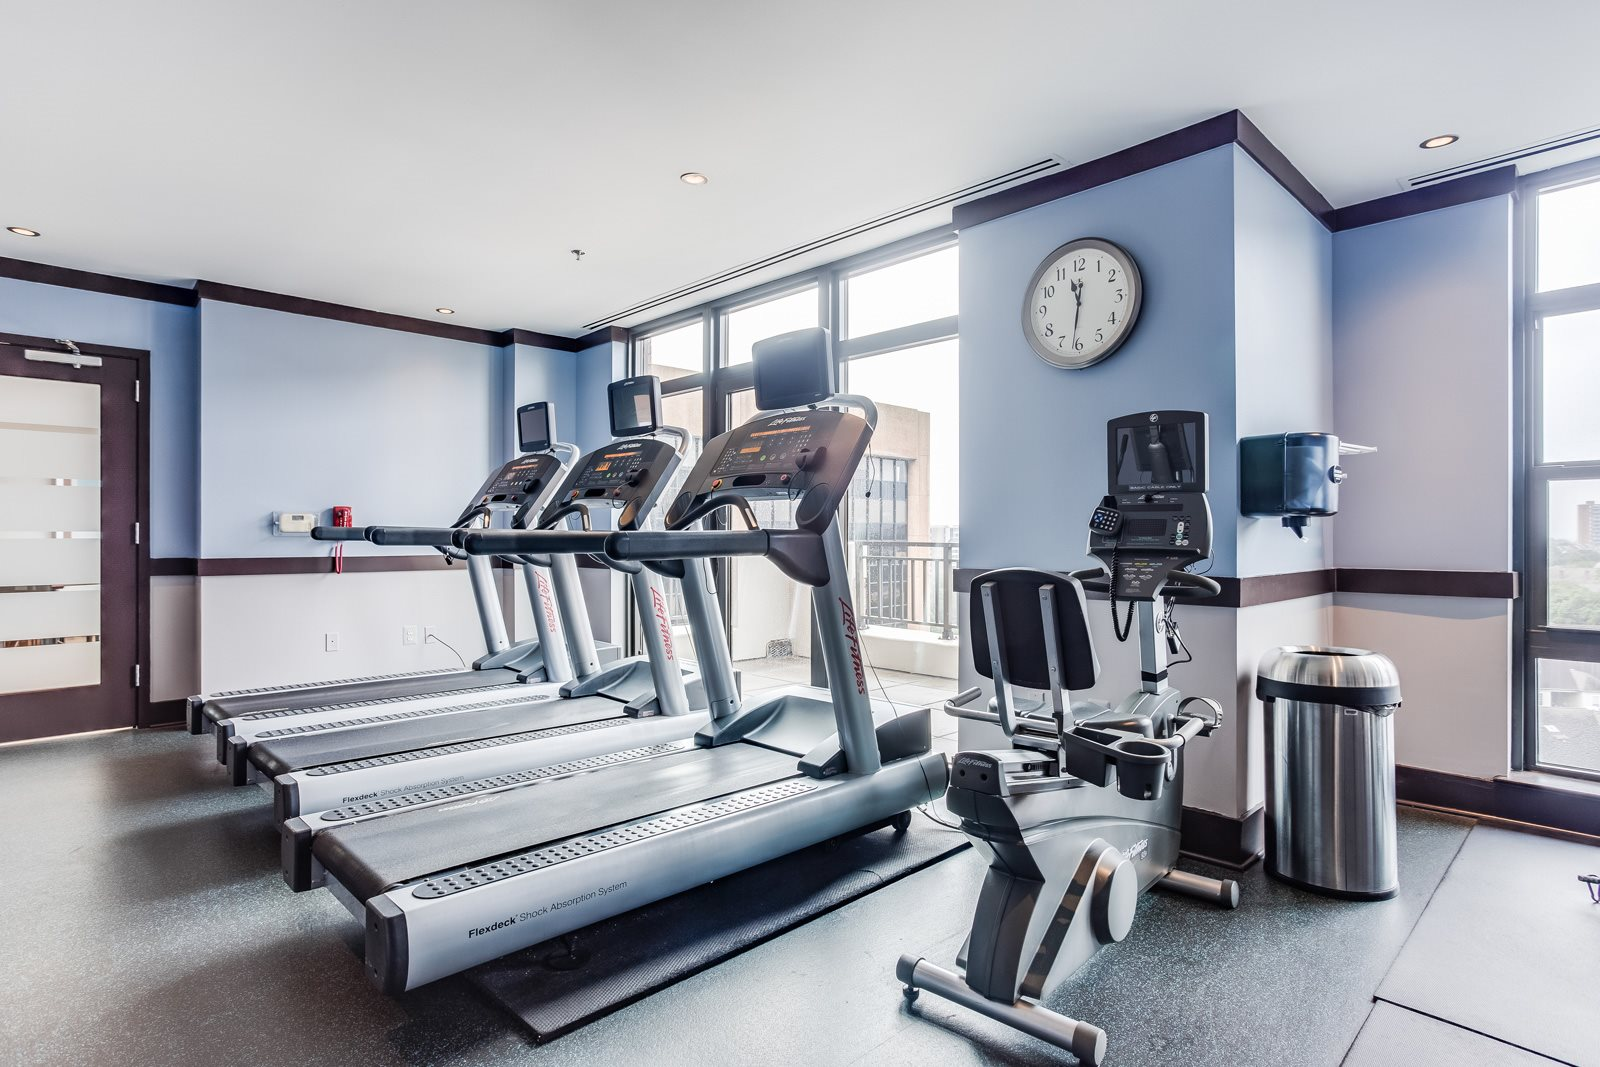 Life Fitness Equipment with Built-In Entertainment at Halstead Tower by Windsor, 4380 King Street, VA